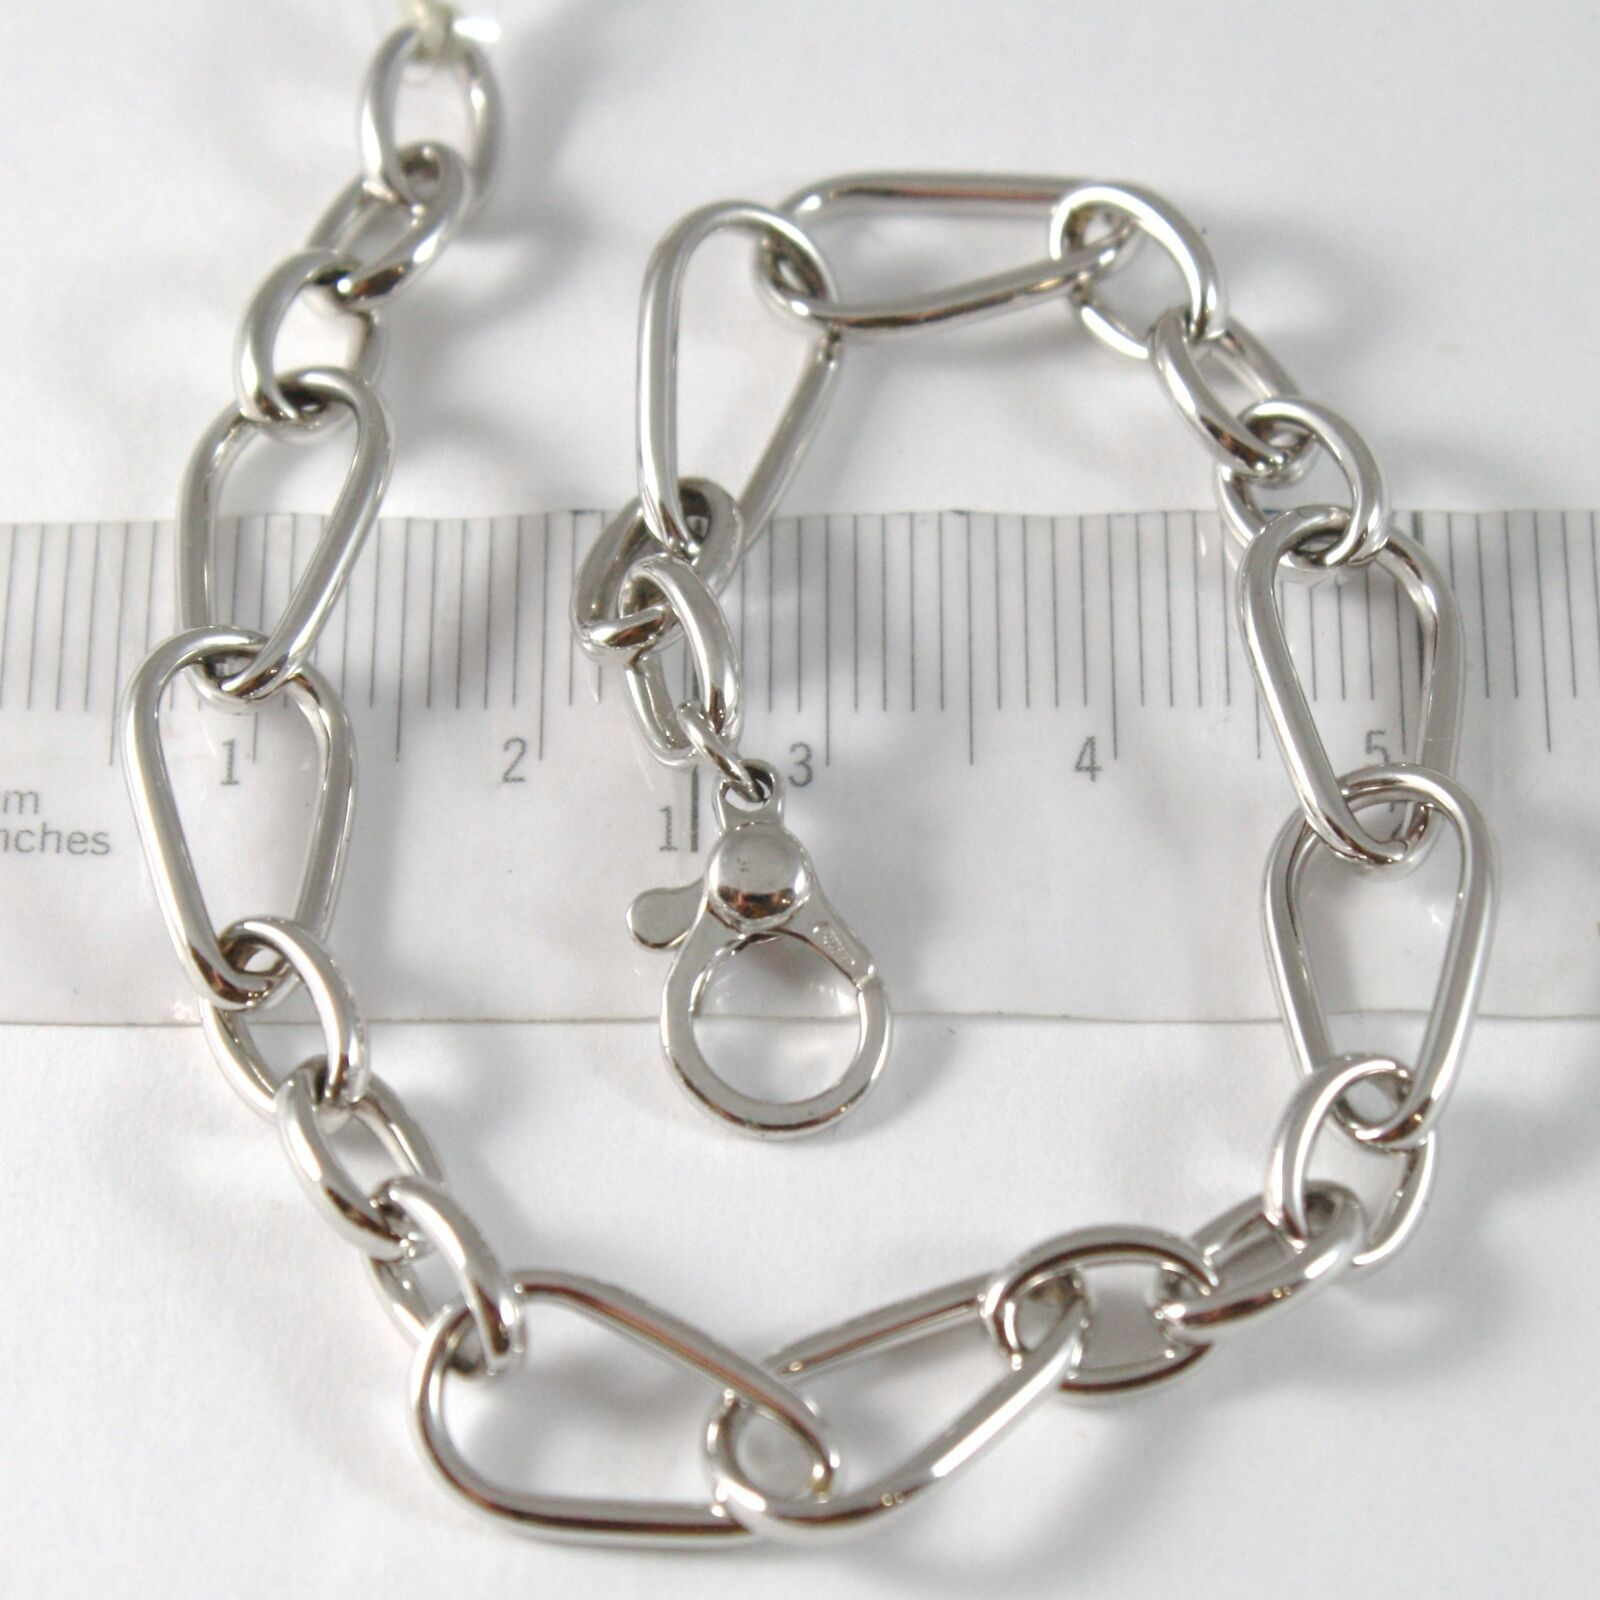 White Gold Bracelet 750 18K with Dew Drops and Ovals, Length 19 cm Adjustable